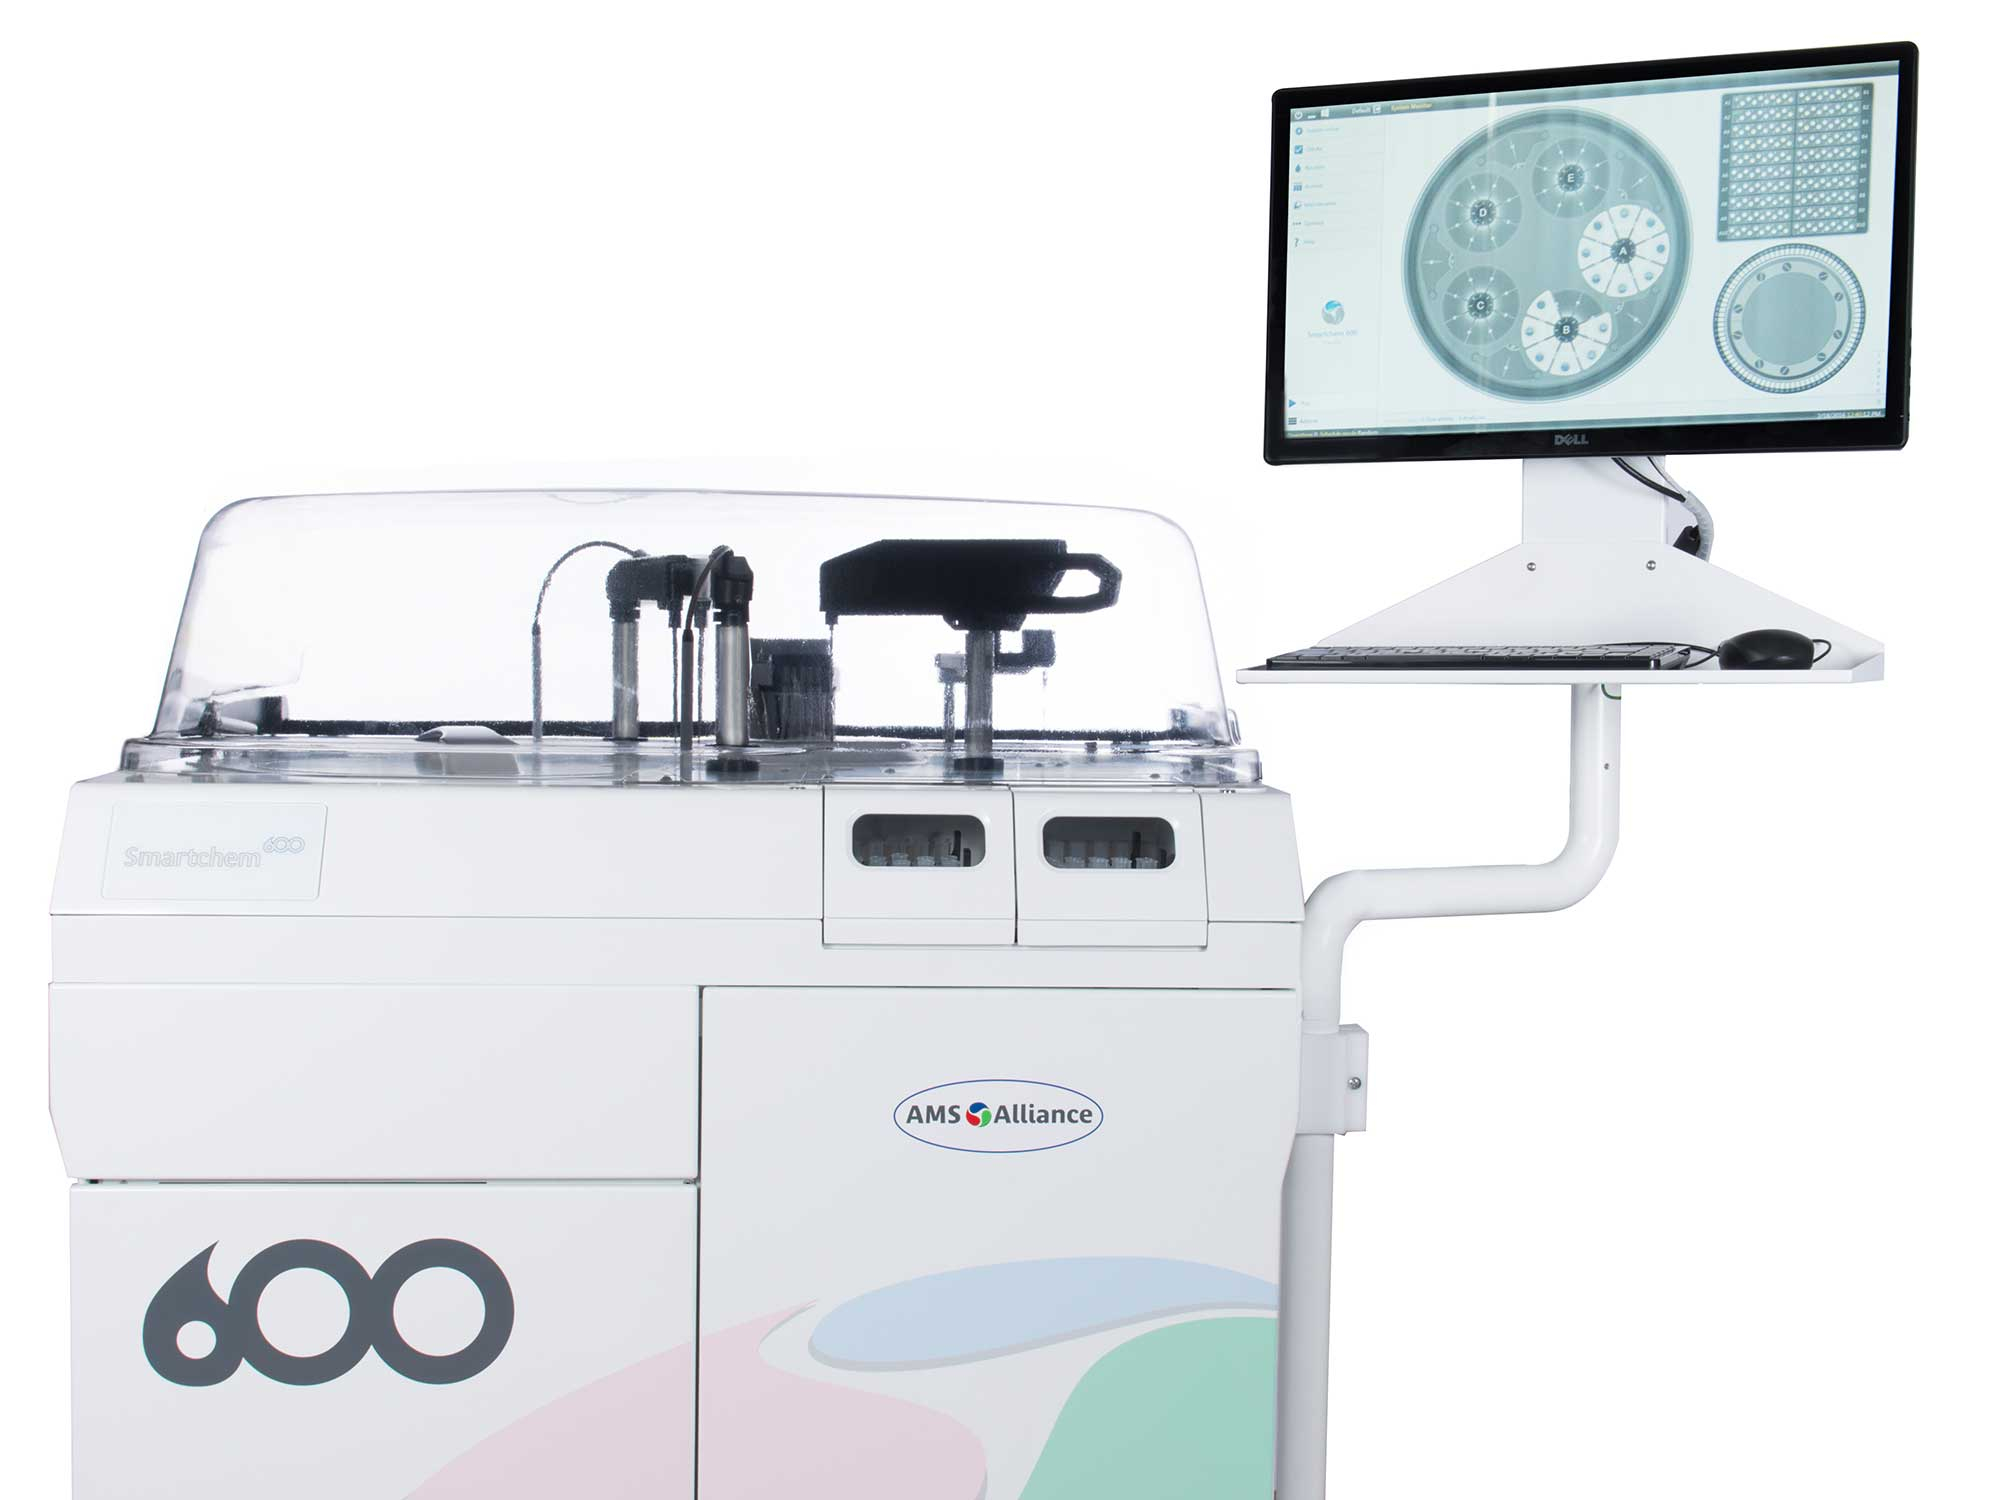 Analytical innovation that accurately meets laboratory expectations